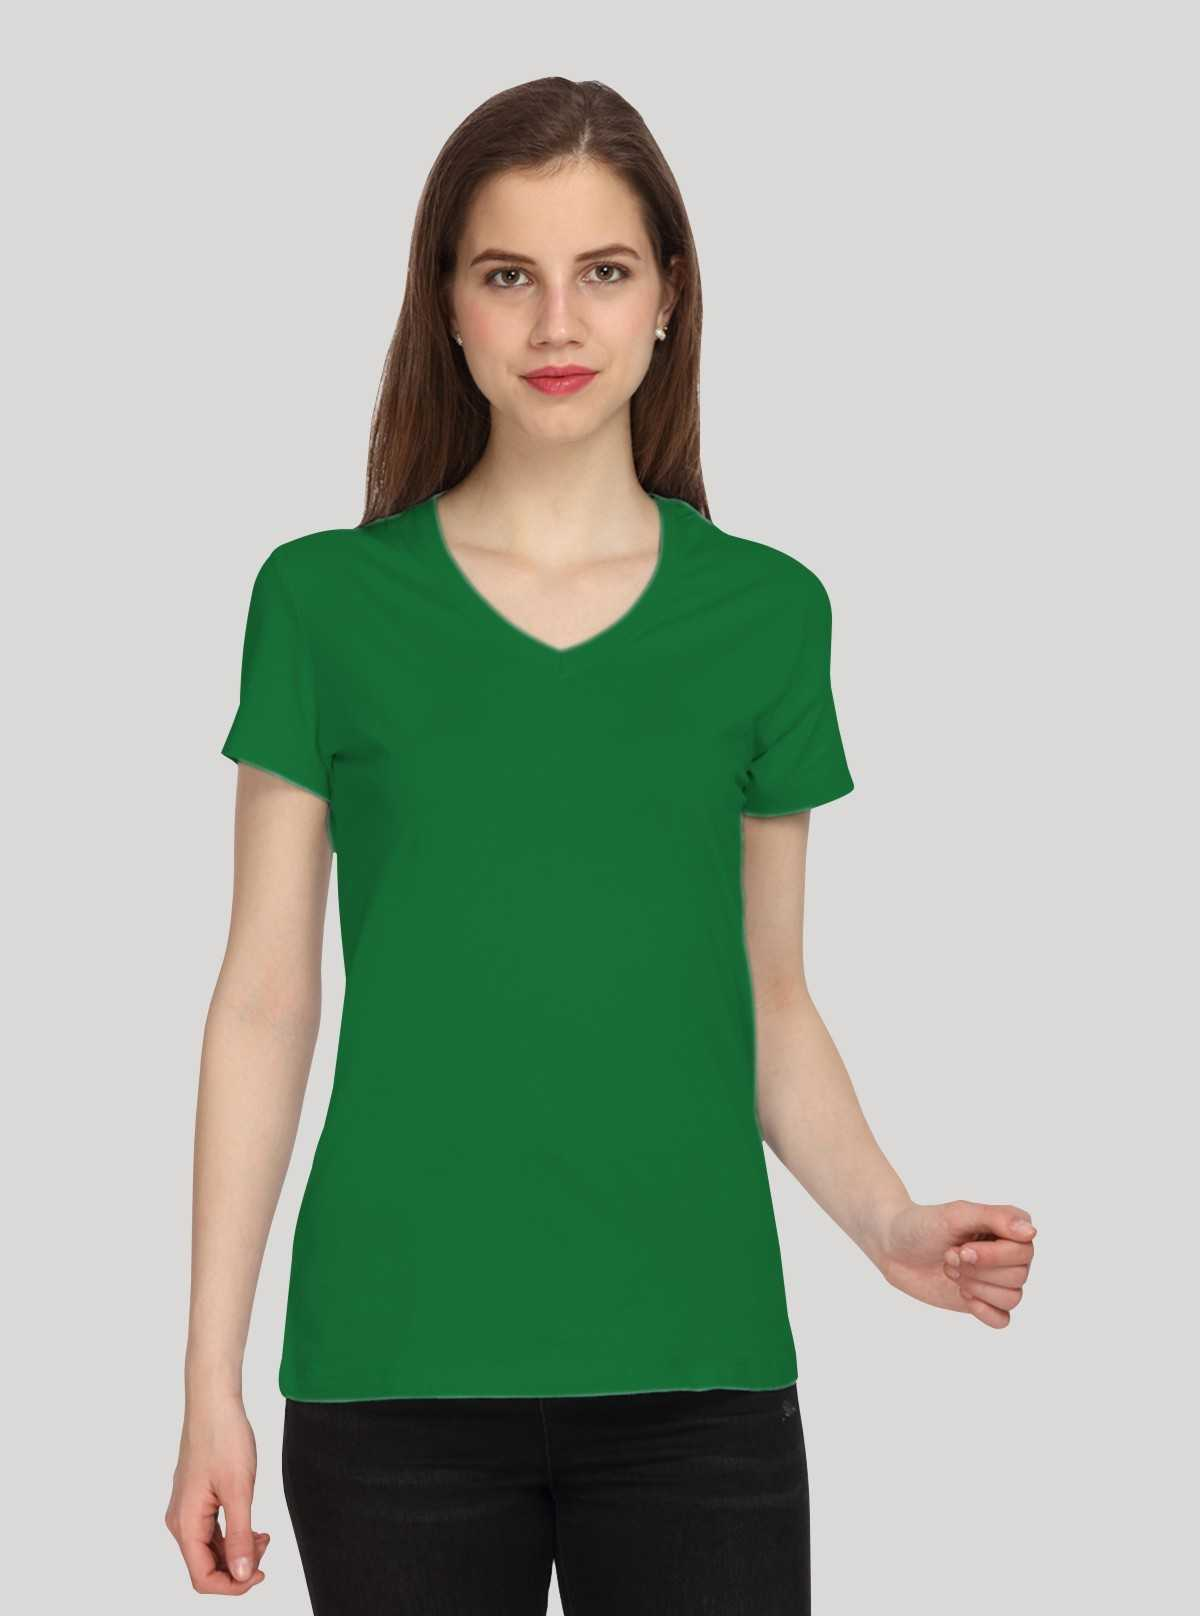 Green Solid V Neck TShirt